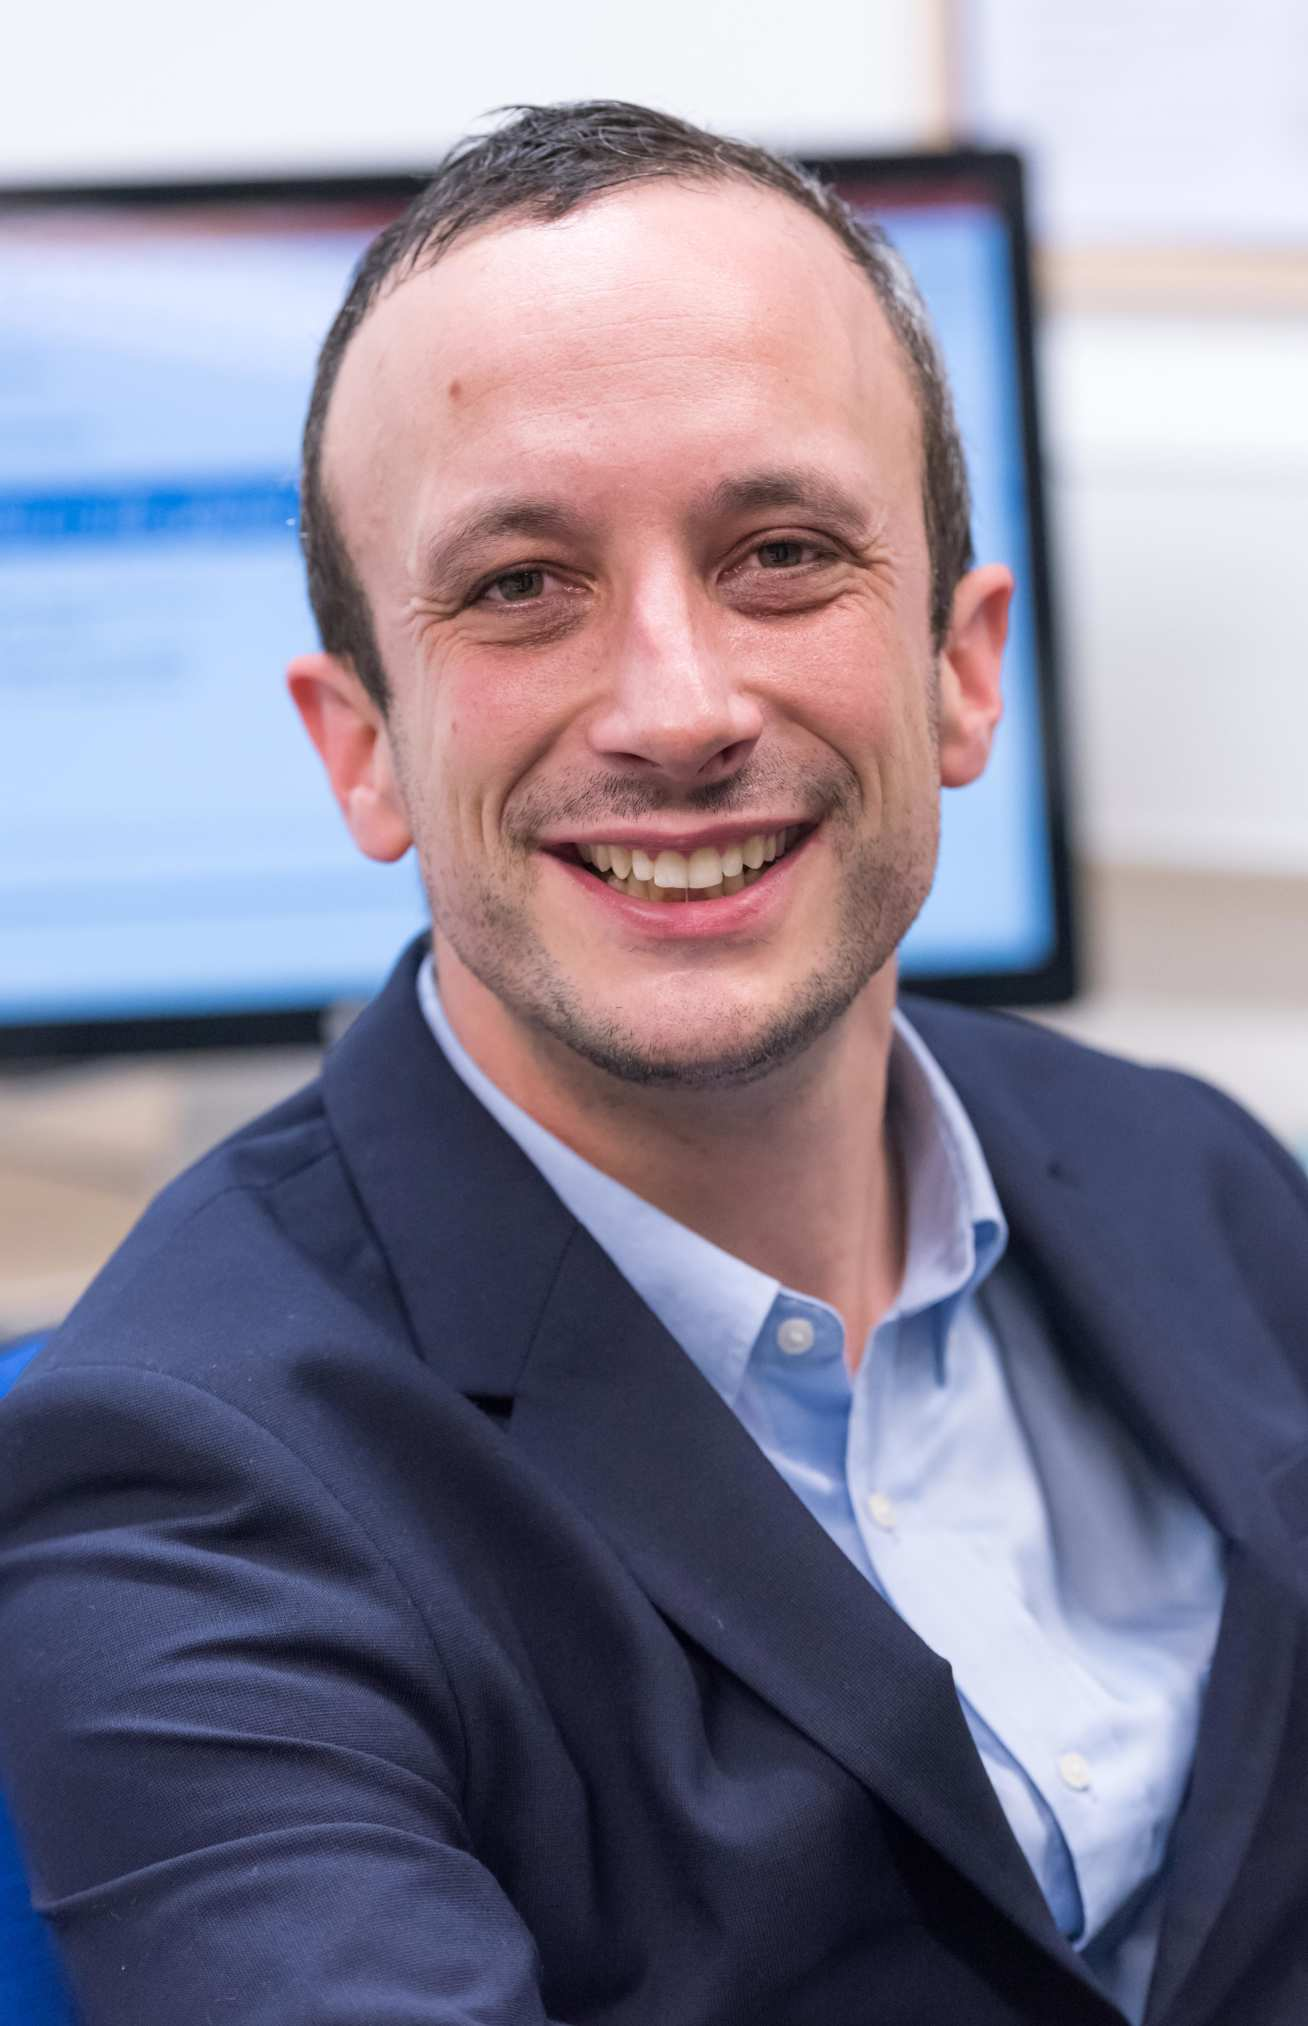 Dr Ifan Stephens